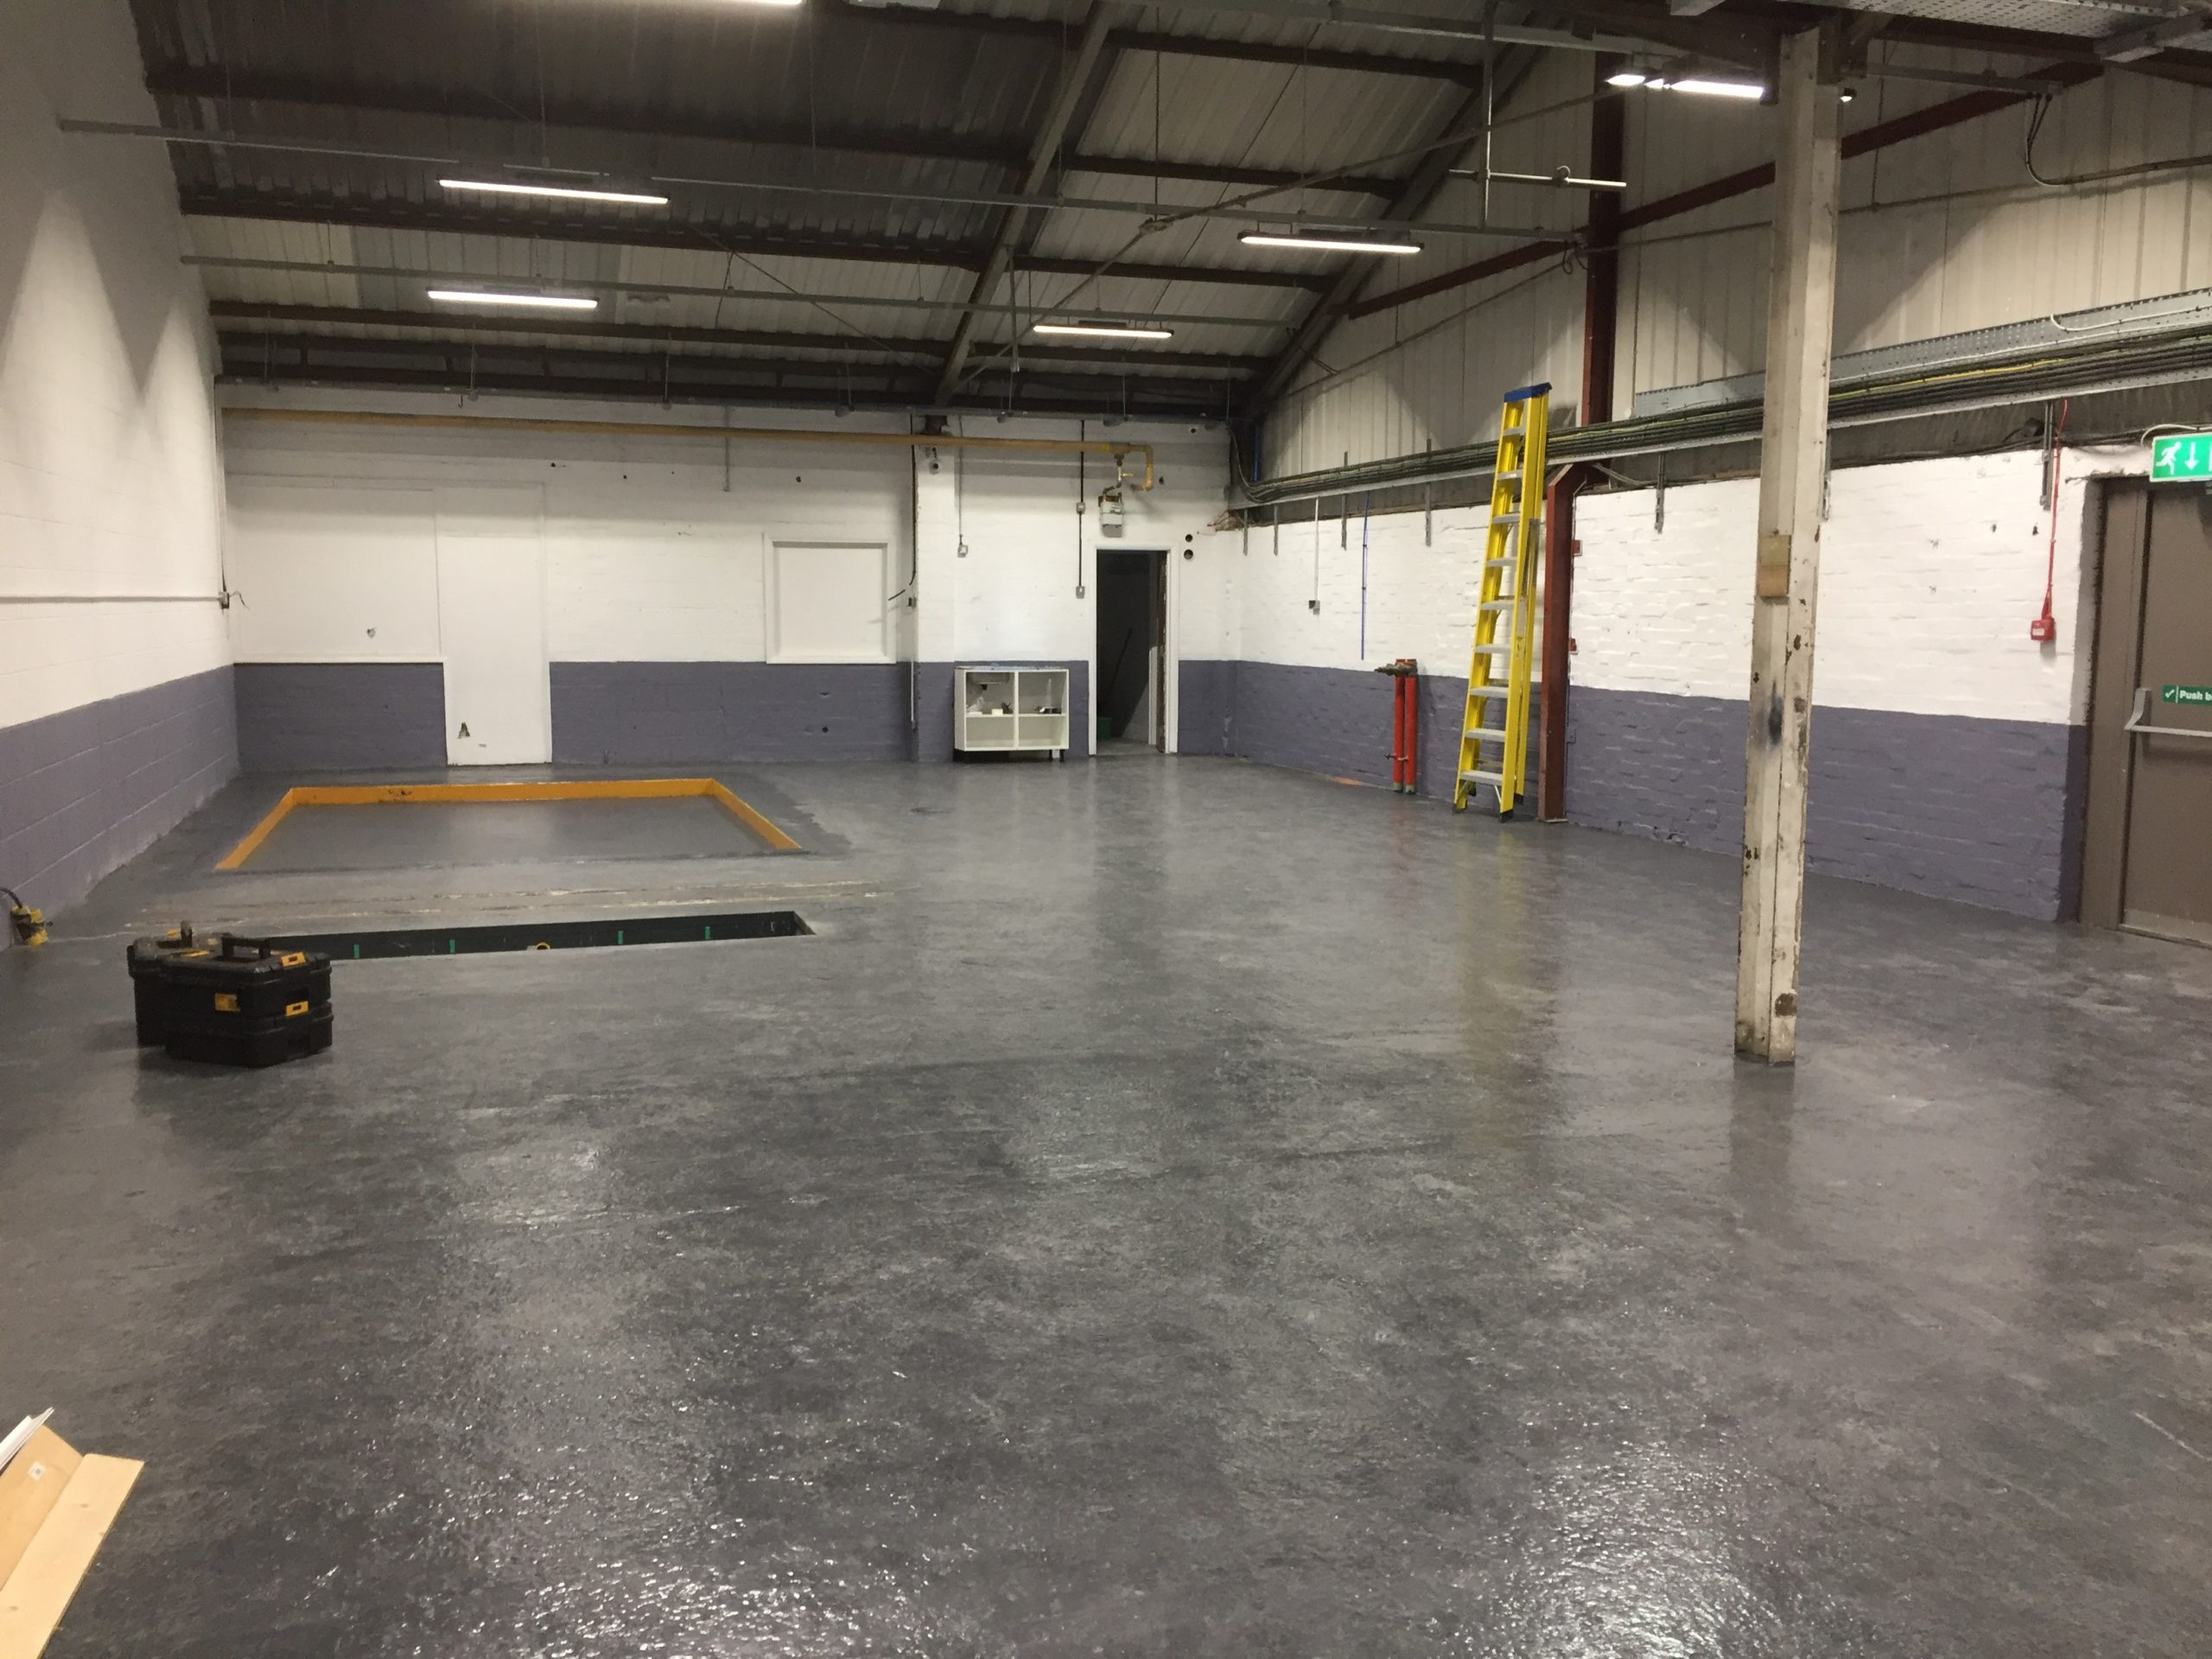 Uncover the amazing installation of a 2 Post Lift, 4 Post Alignment Lift, and full MOT Bay with connected equipment.